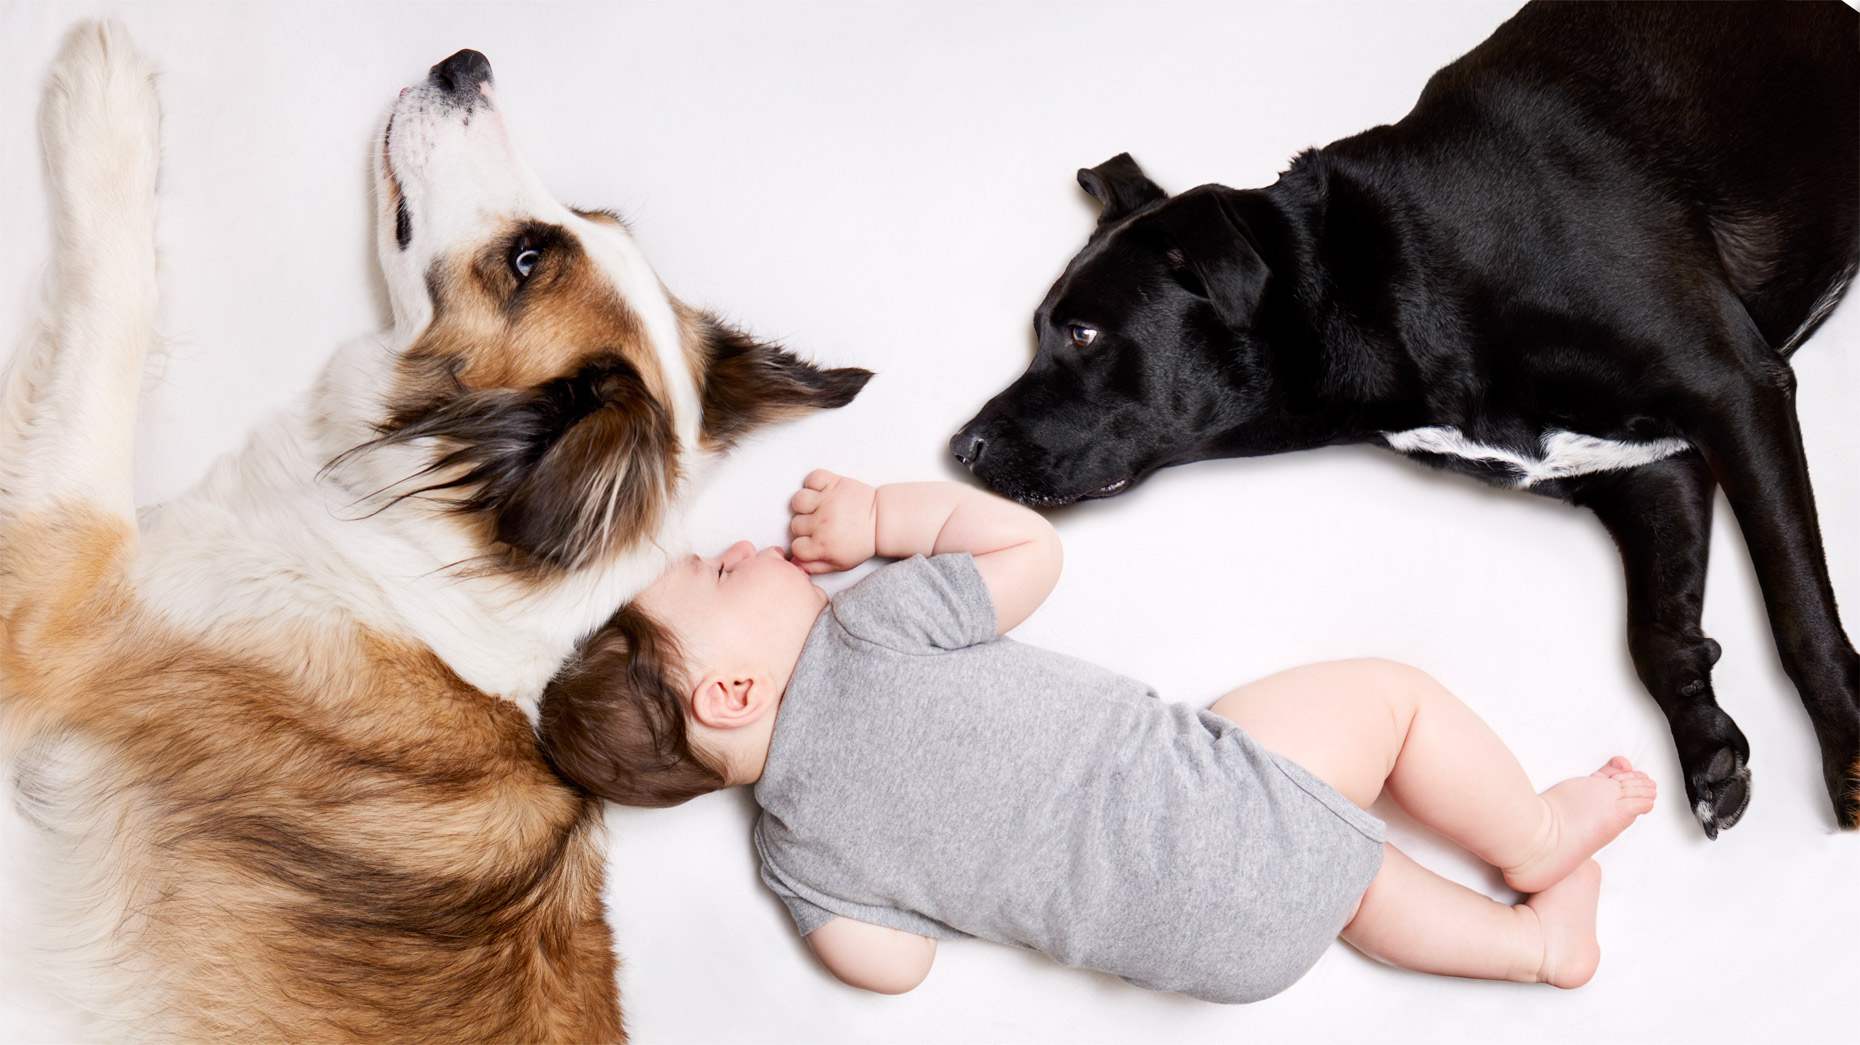 Baby laying on bed with dogs